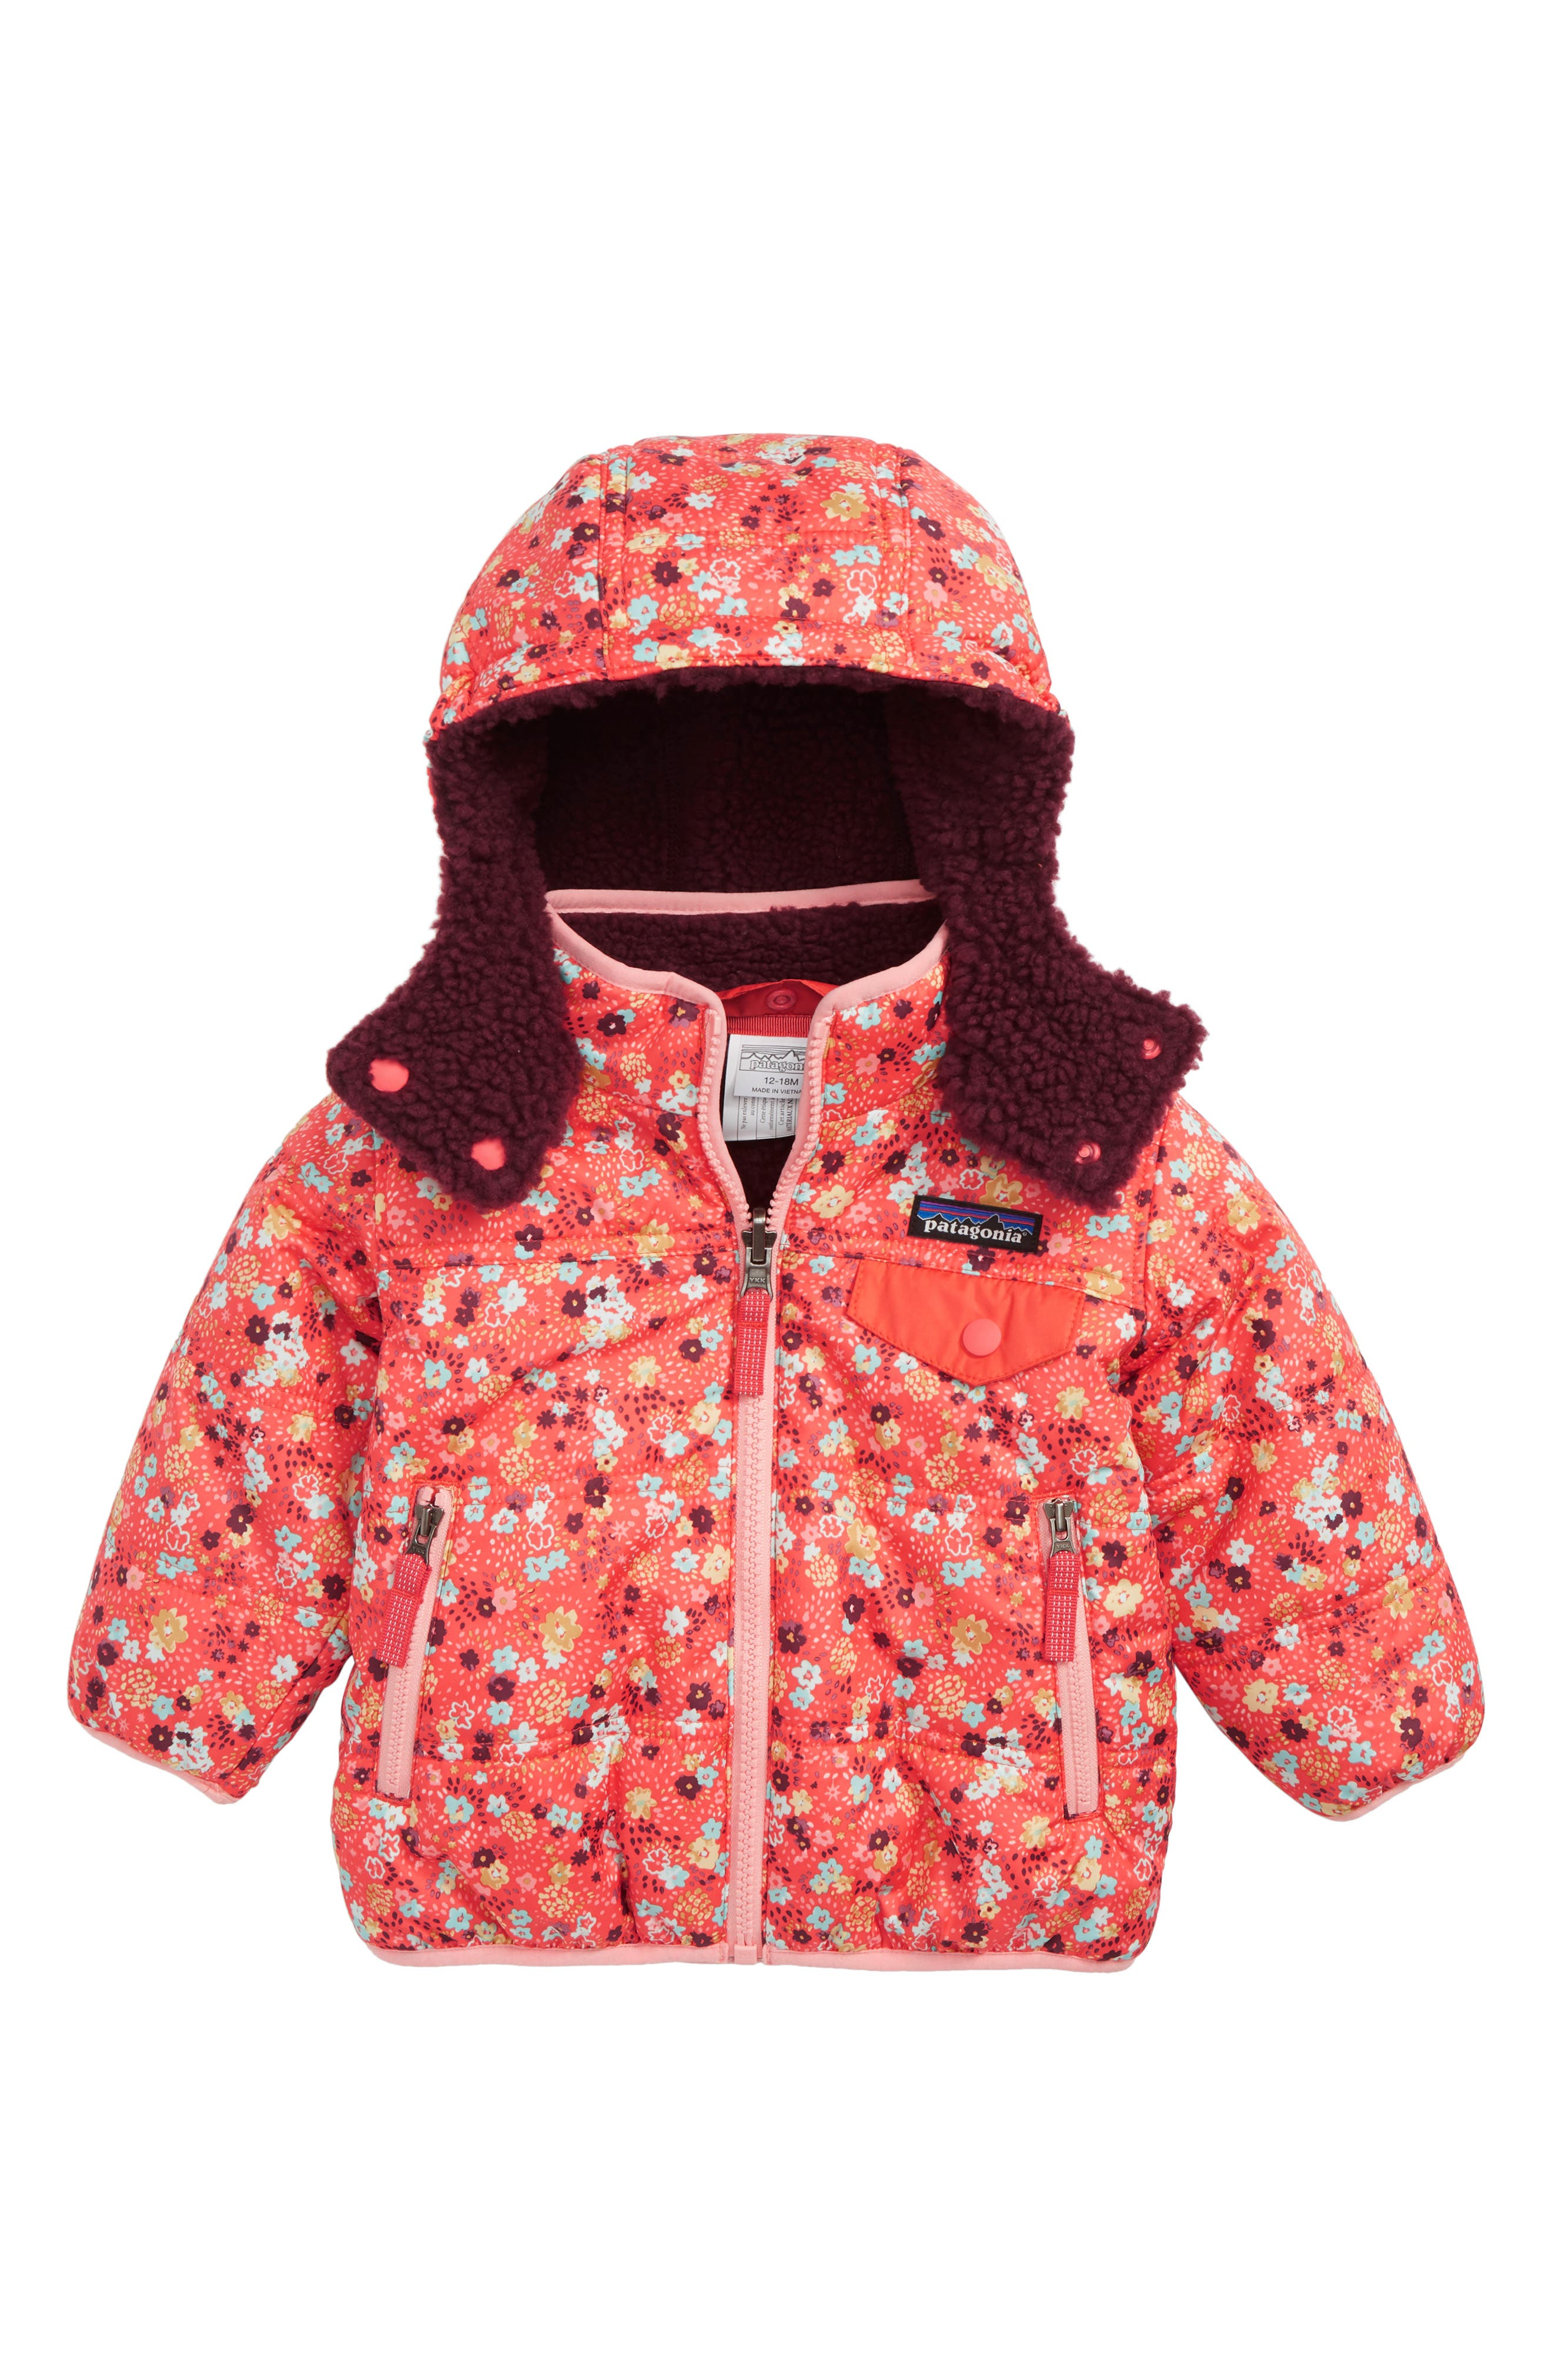 PATAGONIA Tribbles Reversible Water Resistant Snow Jacket, Main, color, UDSC UNTAMED DITSY SPICE CORAL